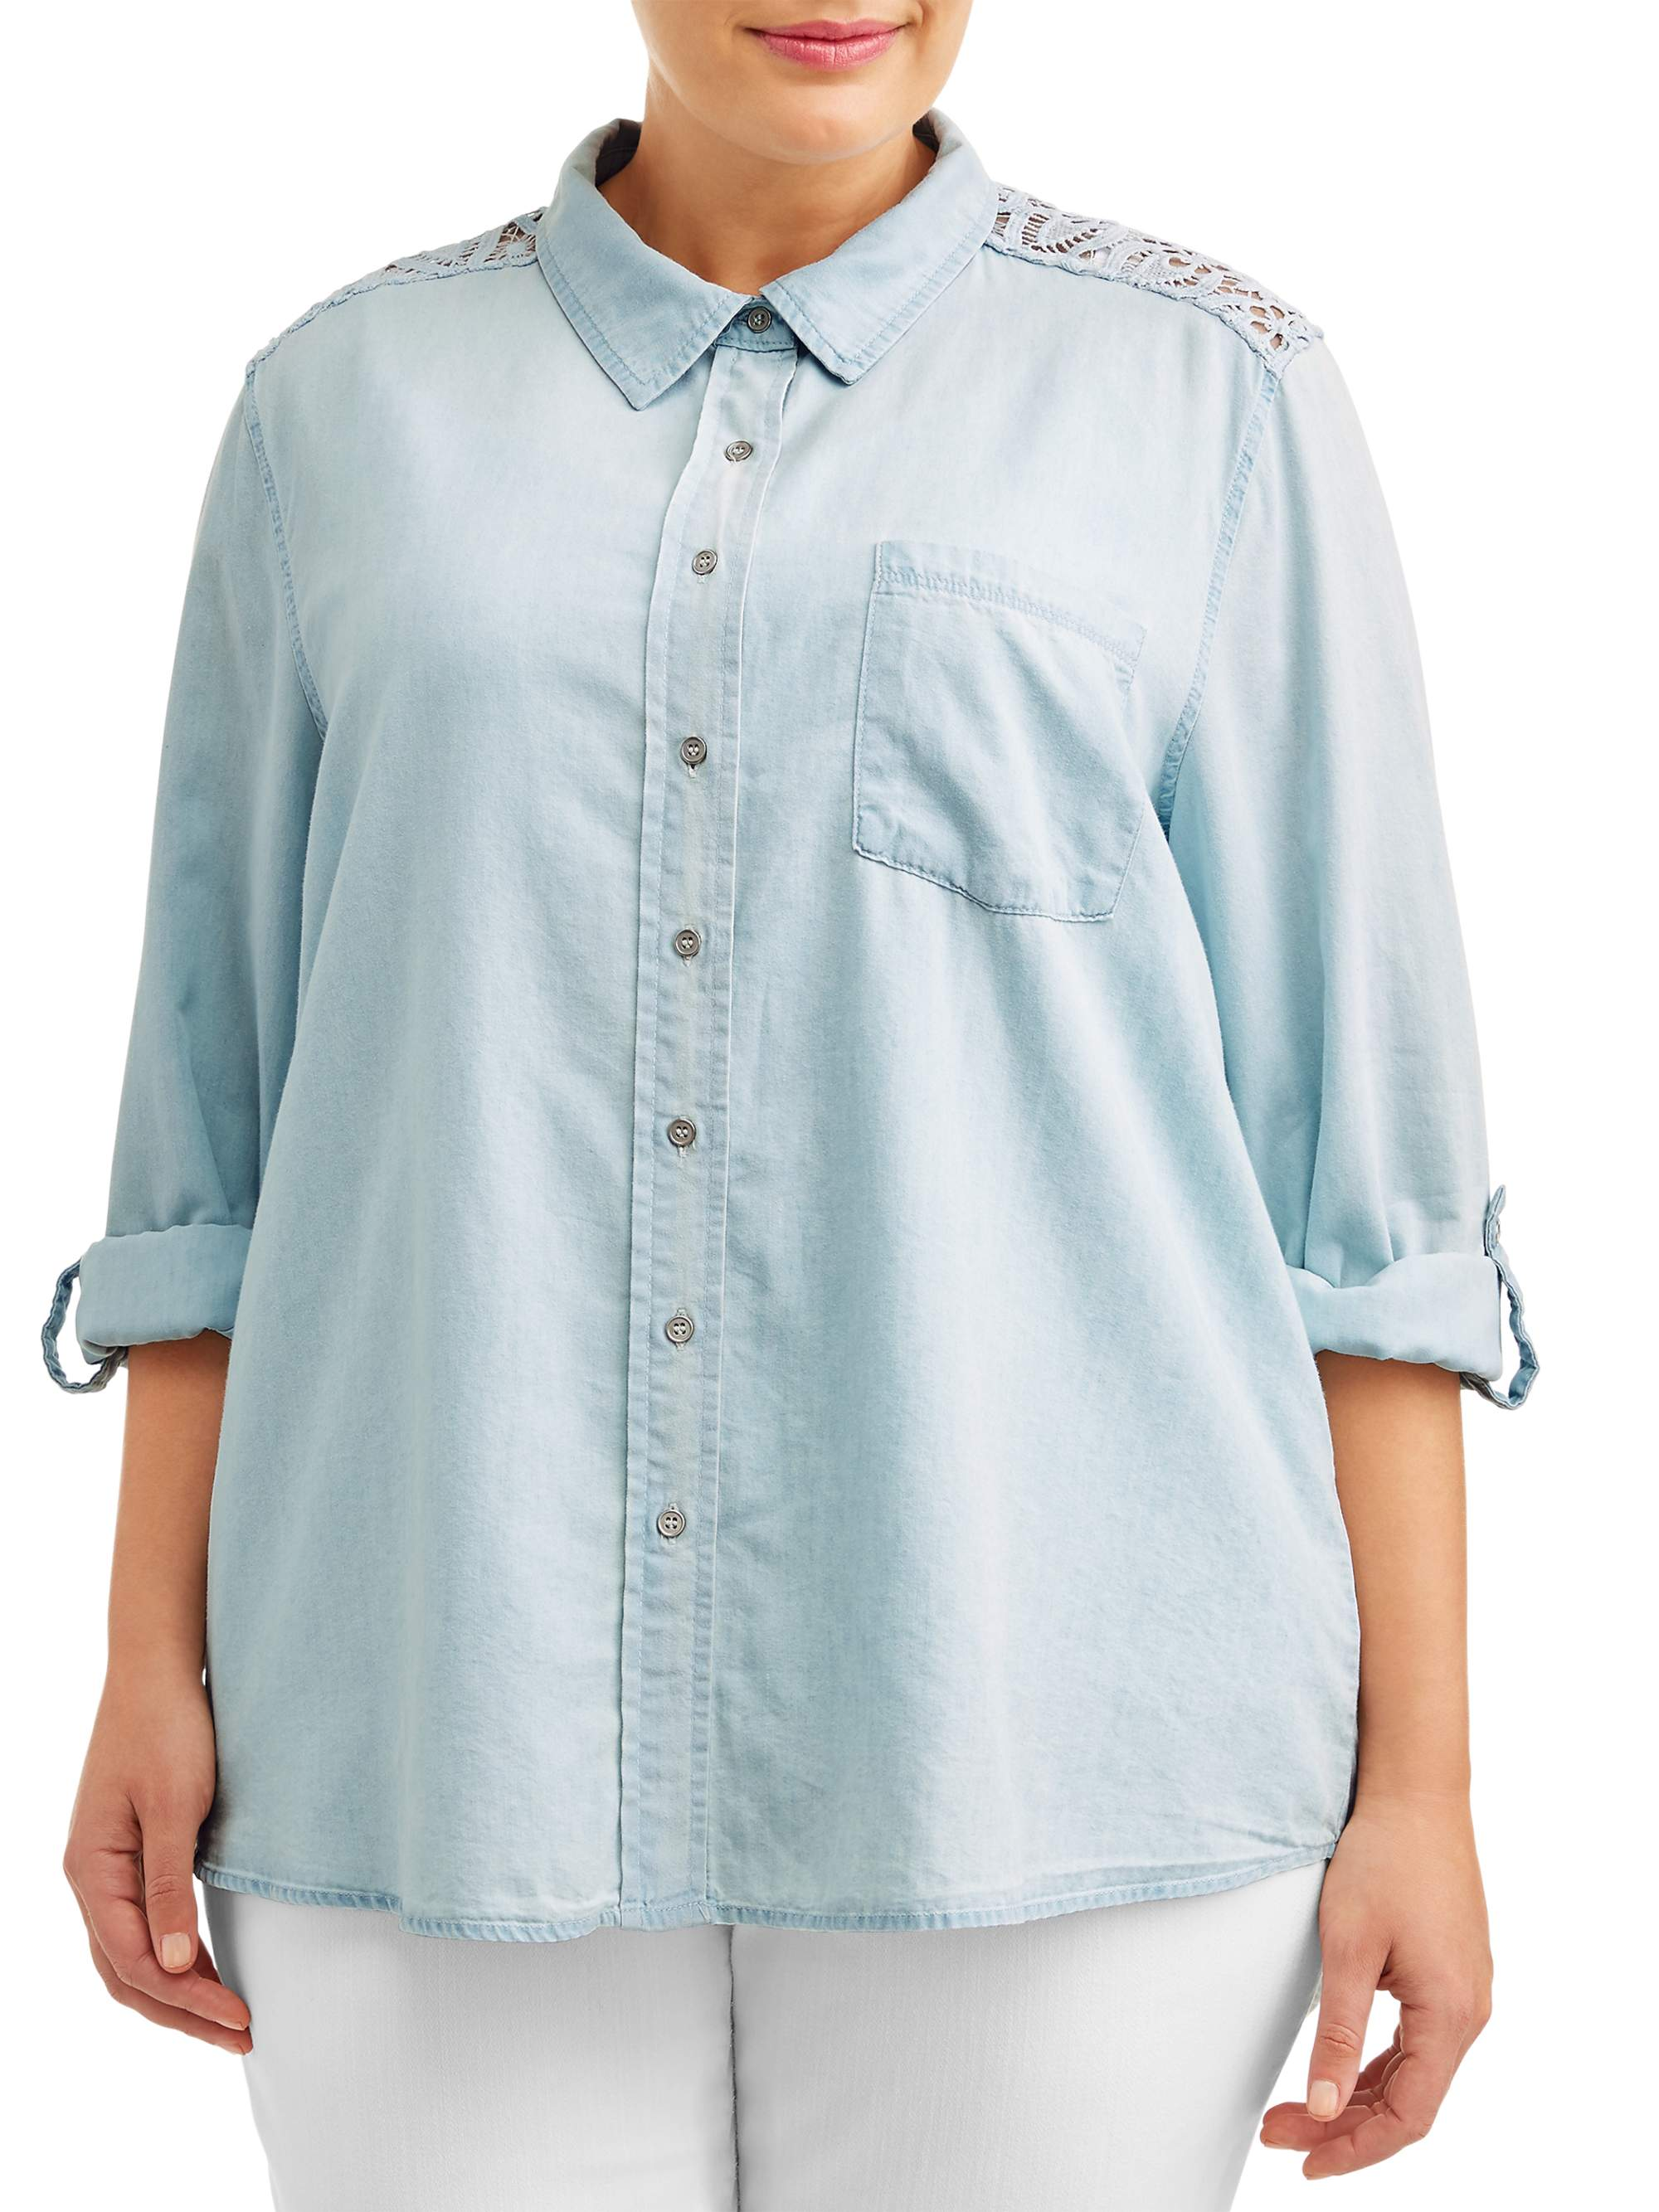 9c7fefd9aad Angels - Women's Plus Size Chambray Collared Shirt with Lace Yoke -  Walmart.com